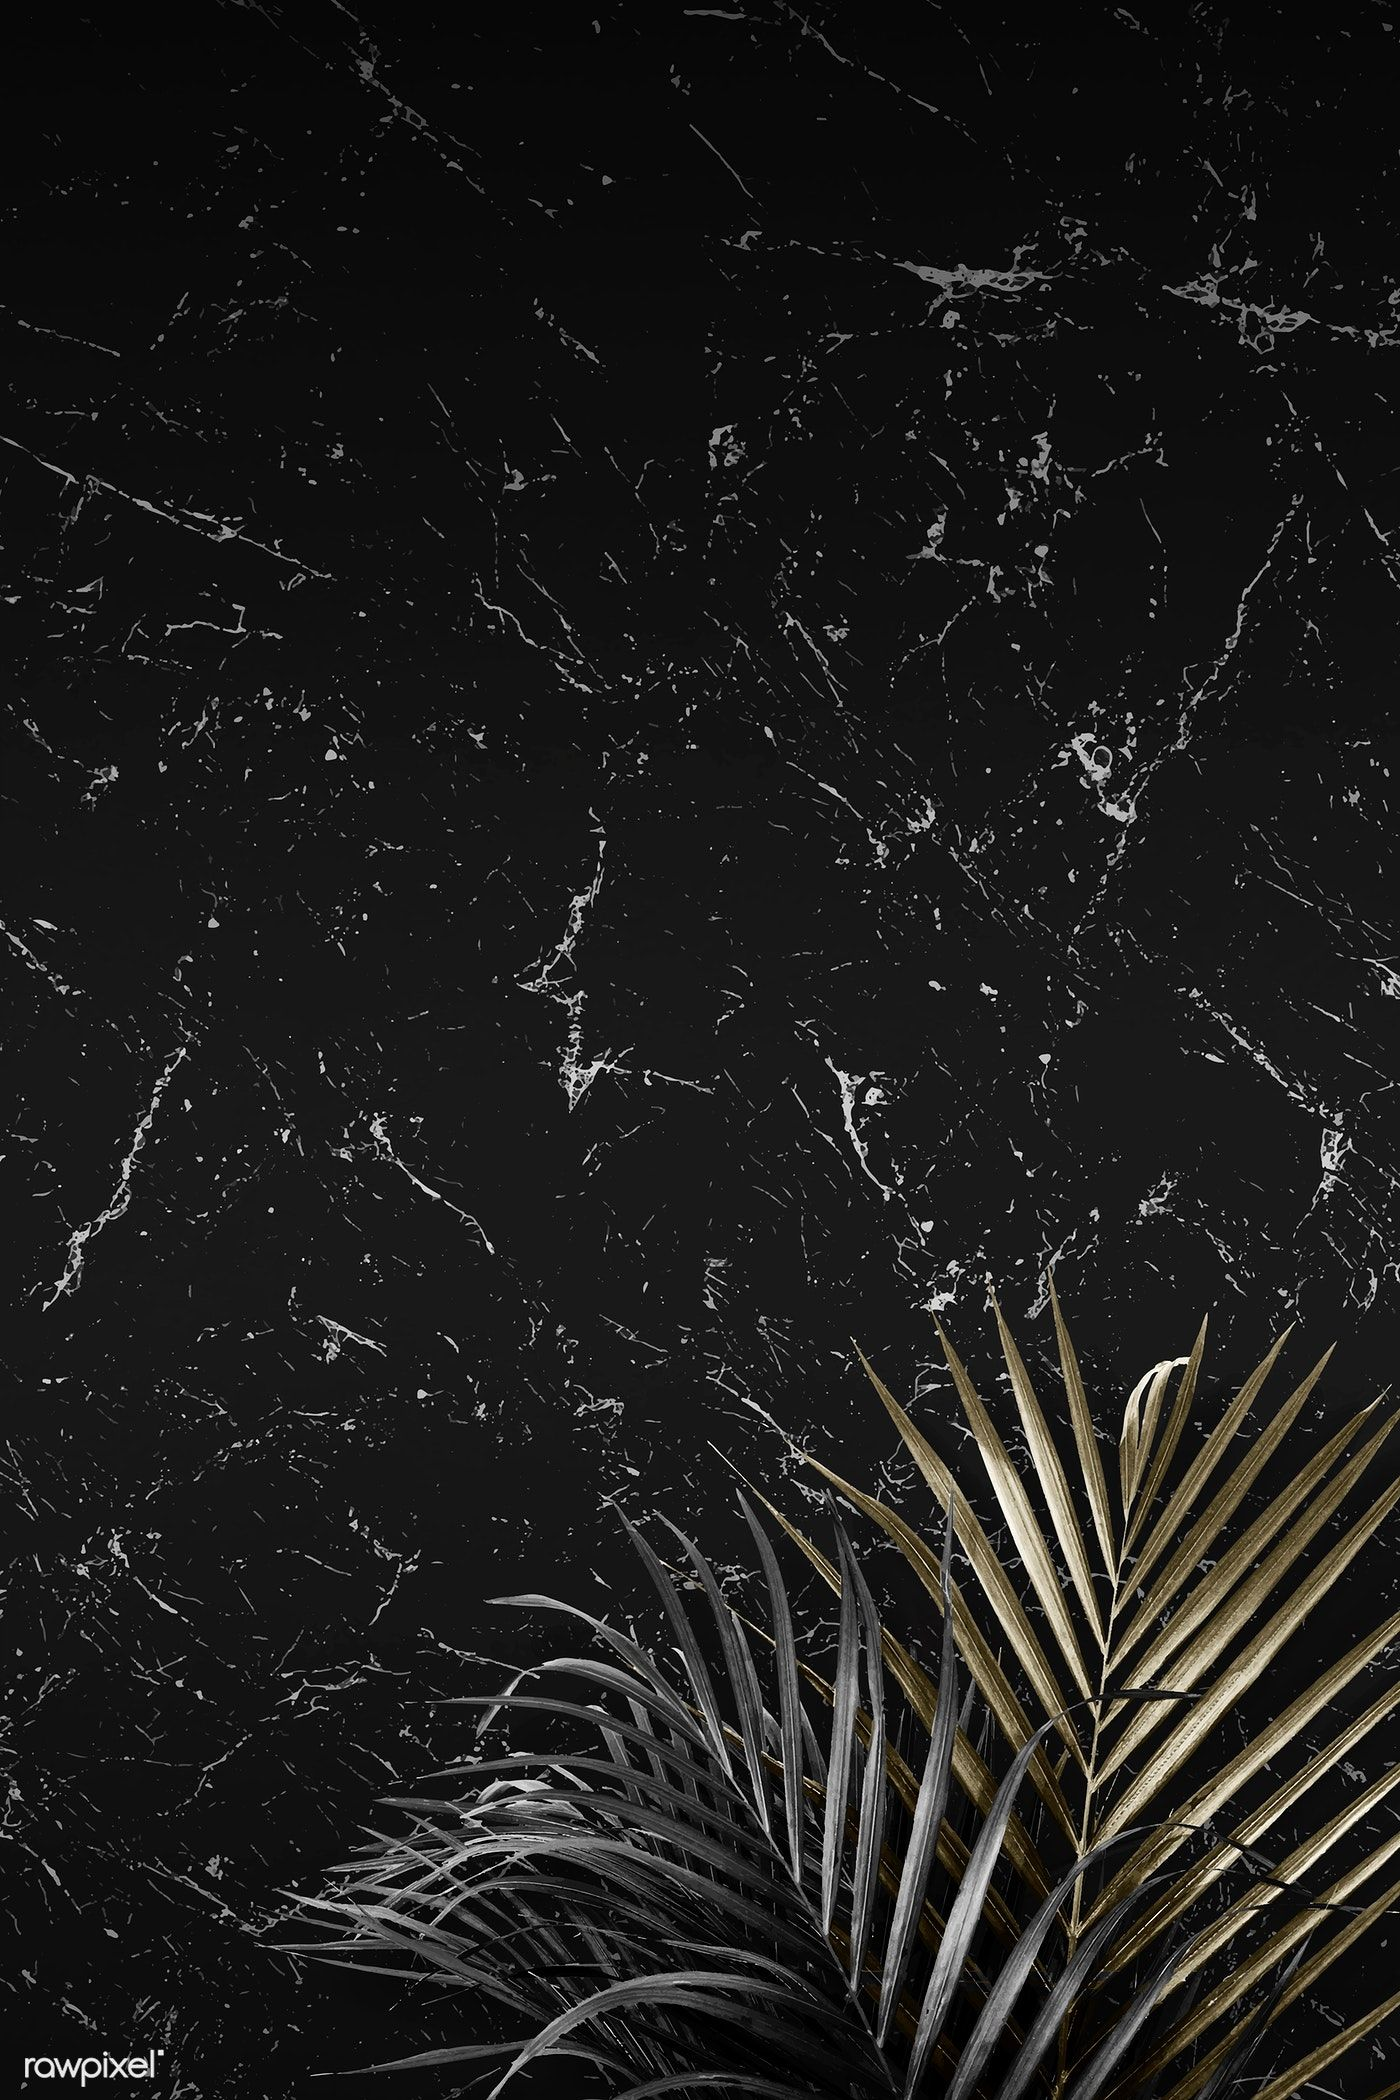 Download premium illustration of Palm leaves on a marble textured #marbletexture